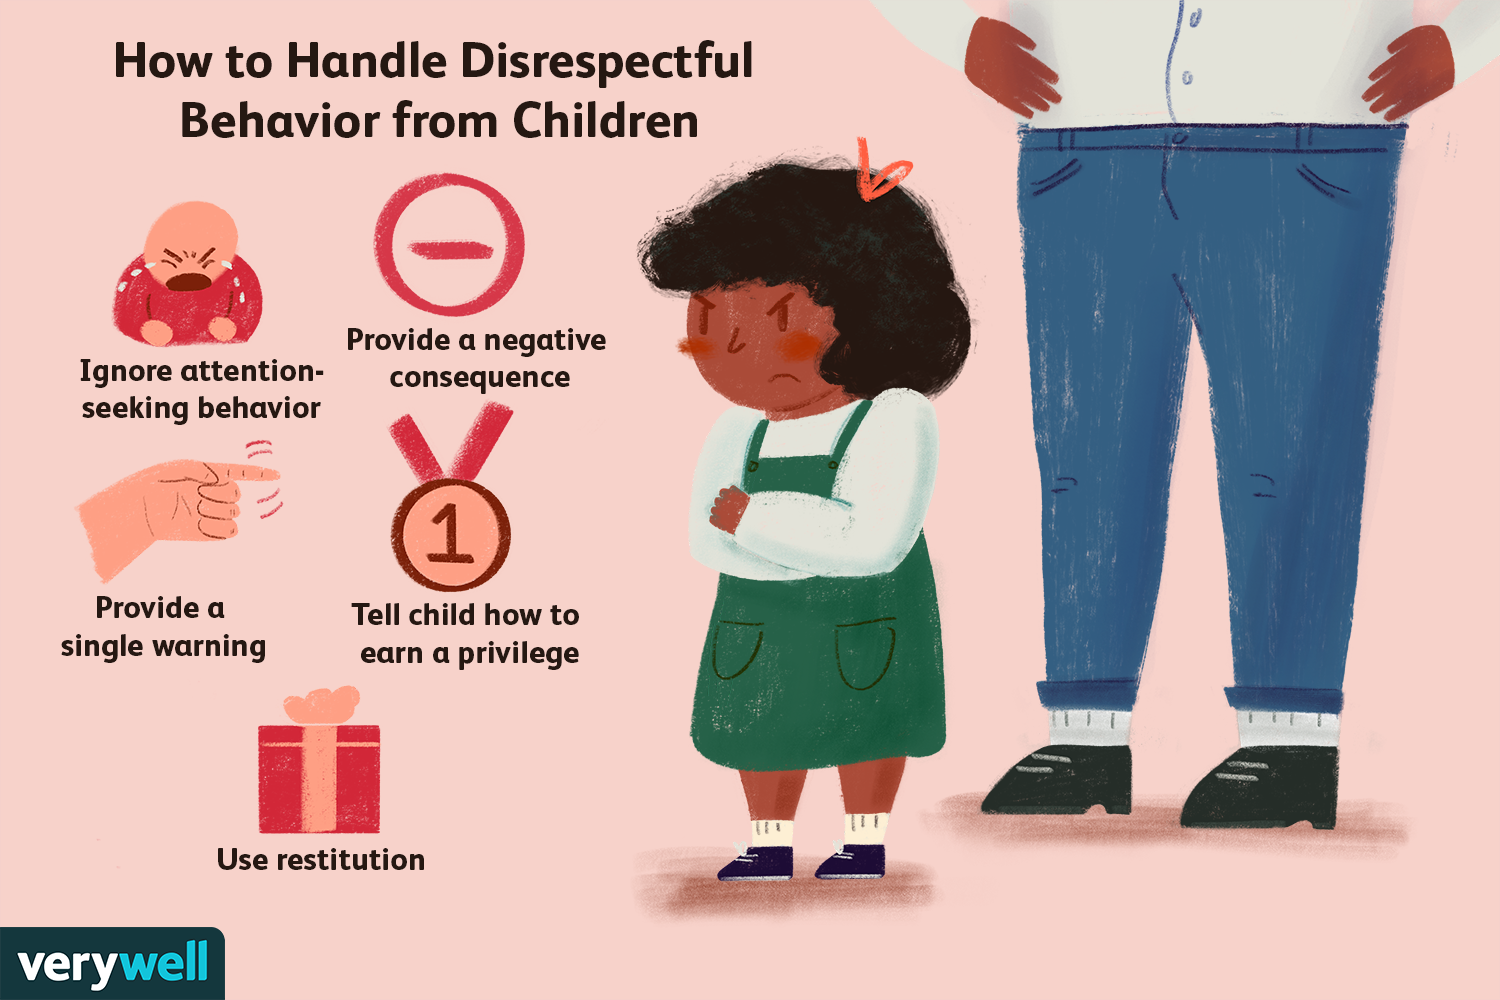 How to Respond to Back Talk, Swearing, Defiance, and Outright Disrespect